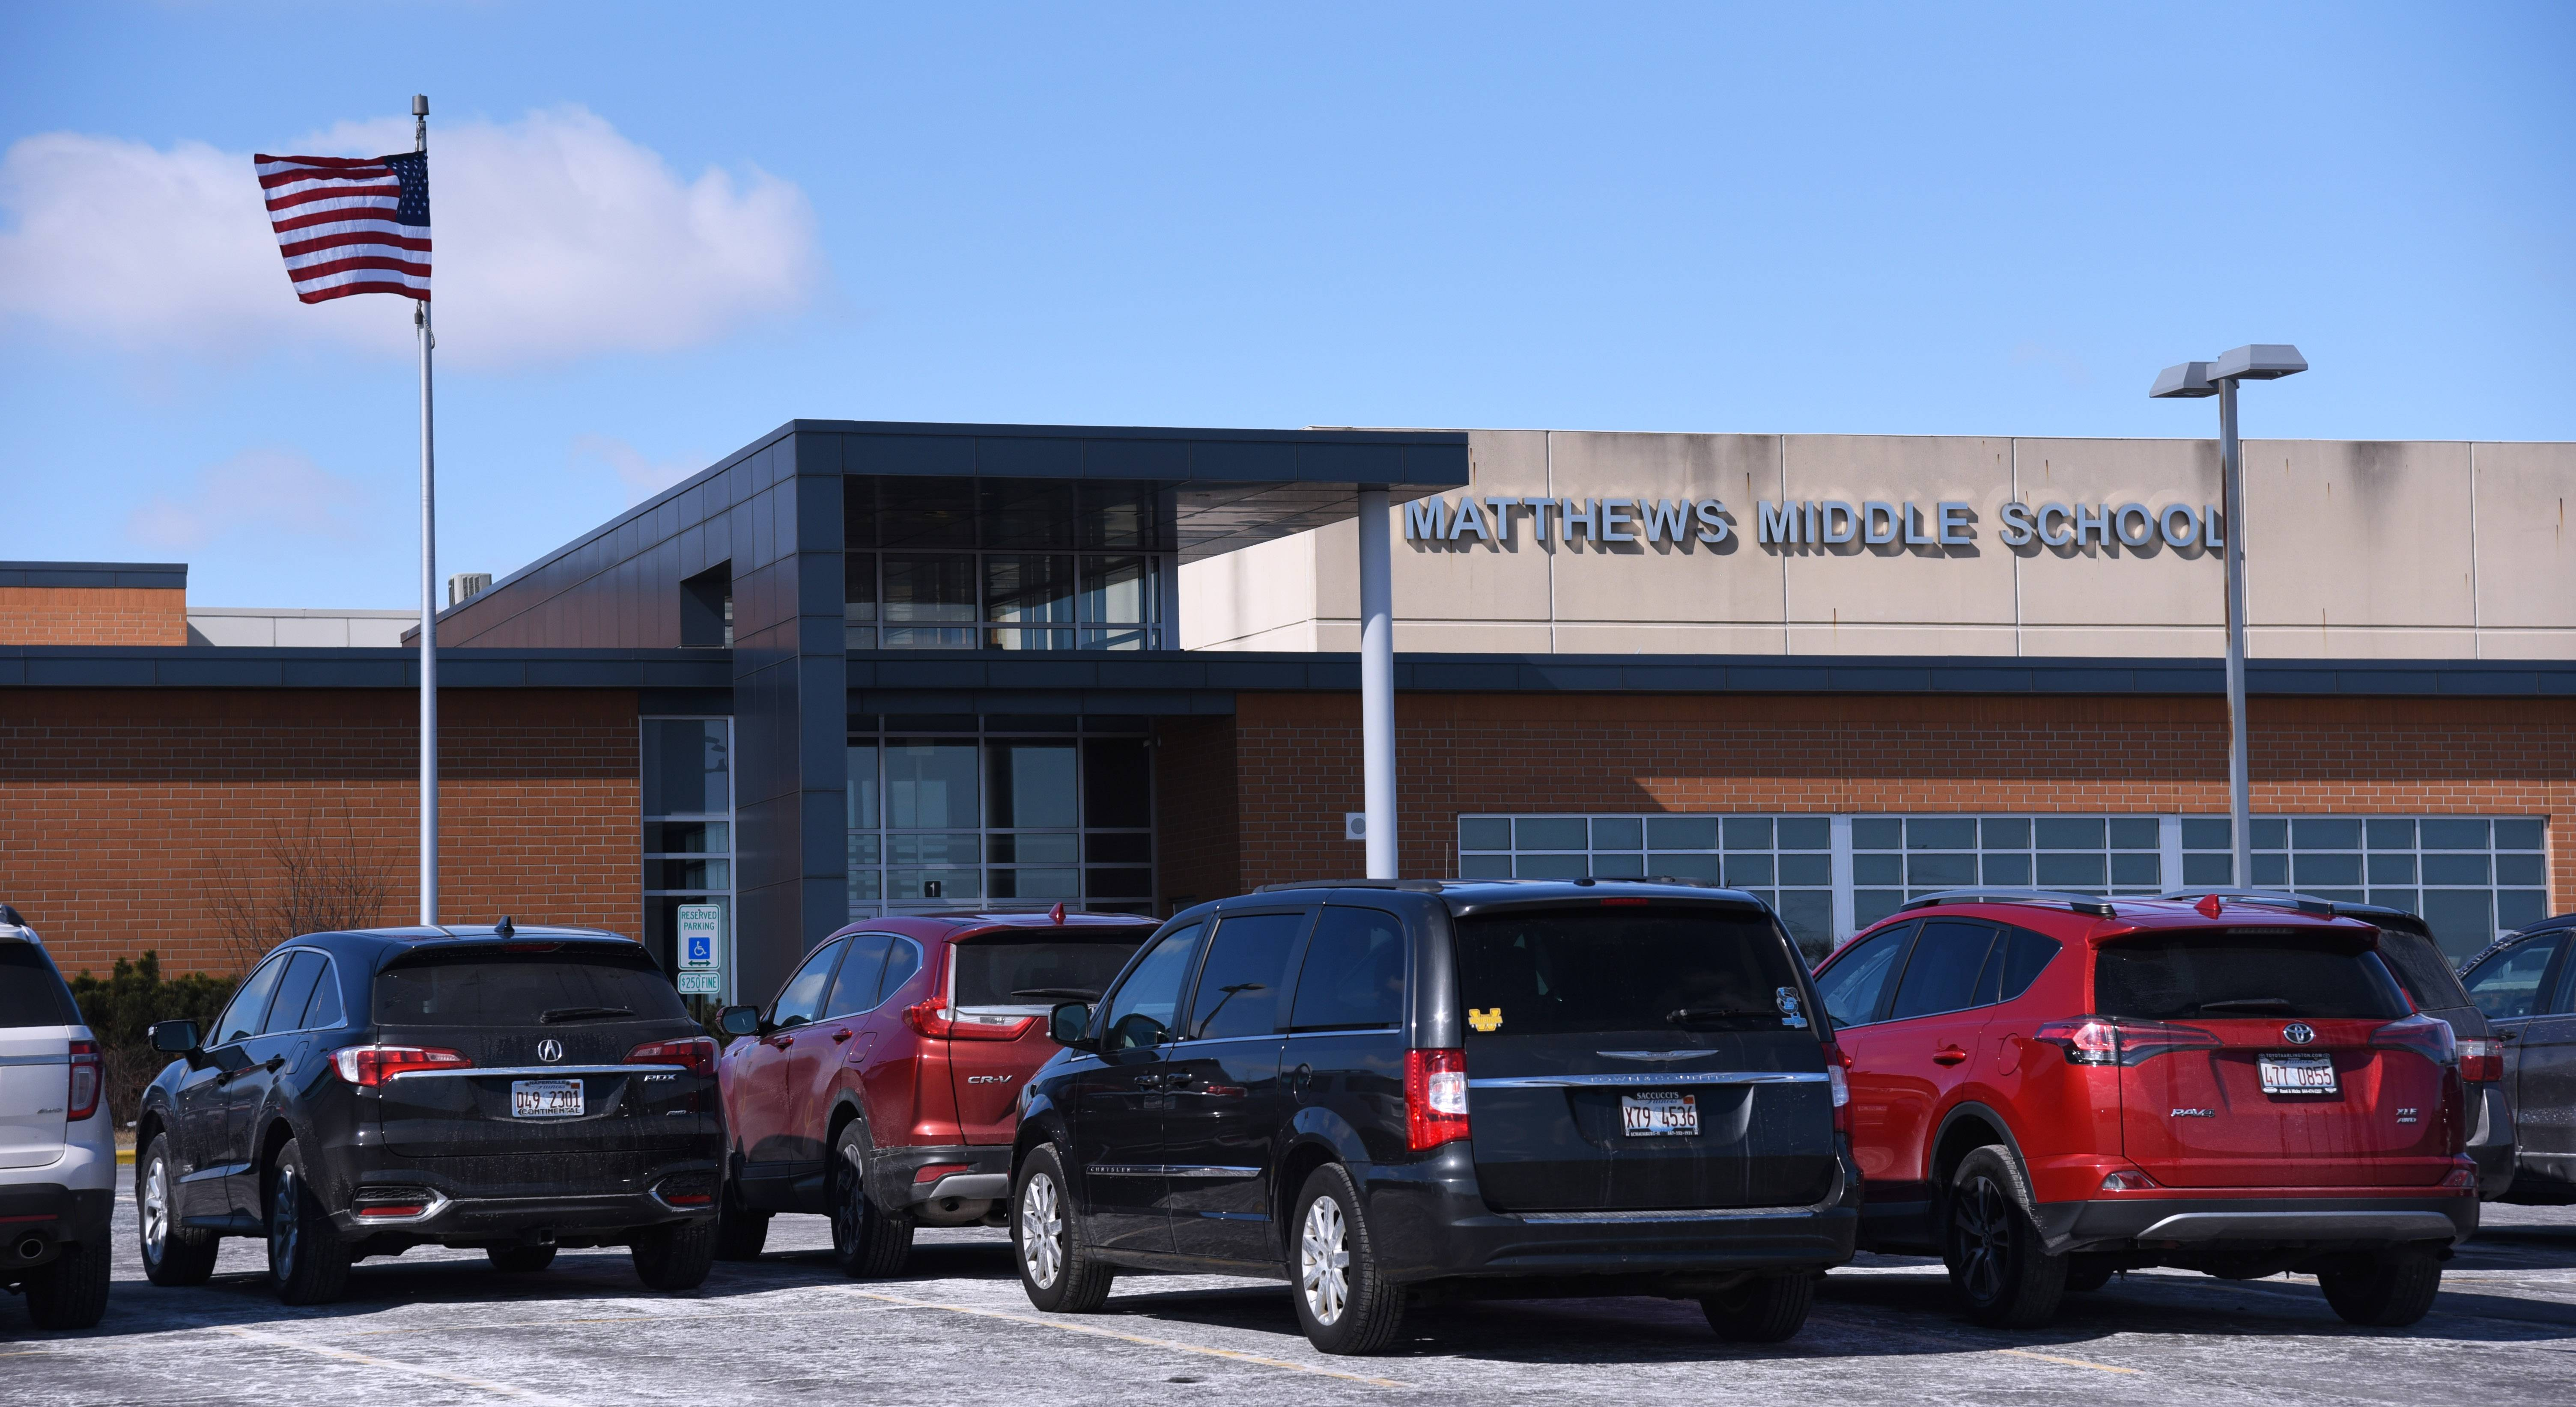 Matthews Middle School on Darrell Road in Island Lake will receive an influx of new students under boundary change proposals being considered by the Wauconda Unit District 118 board of education.